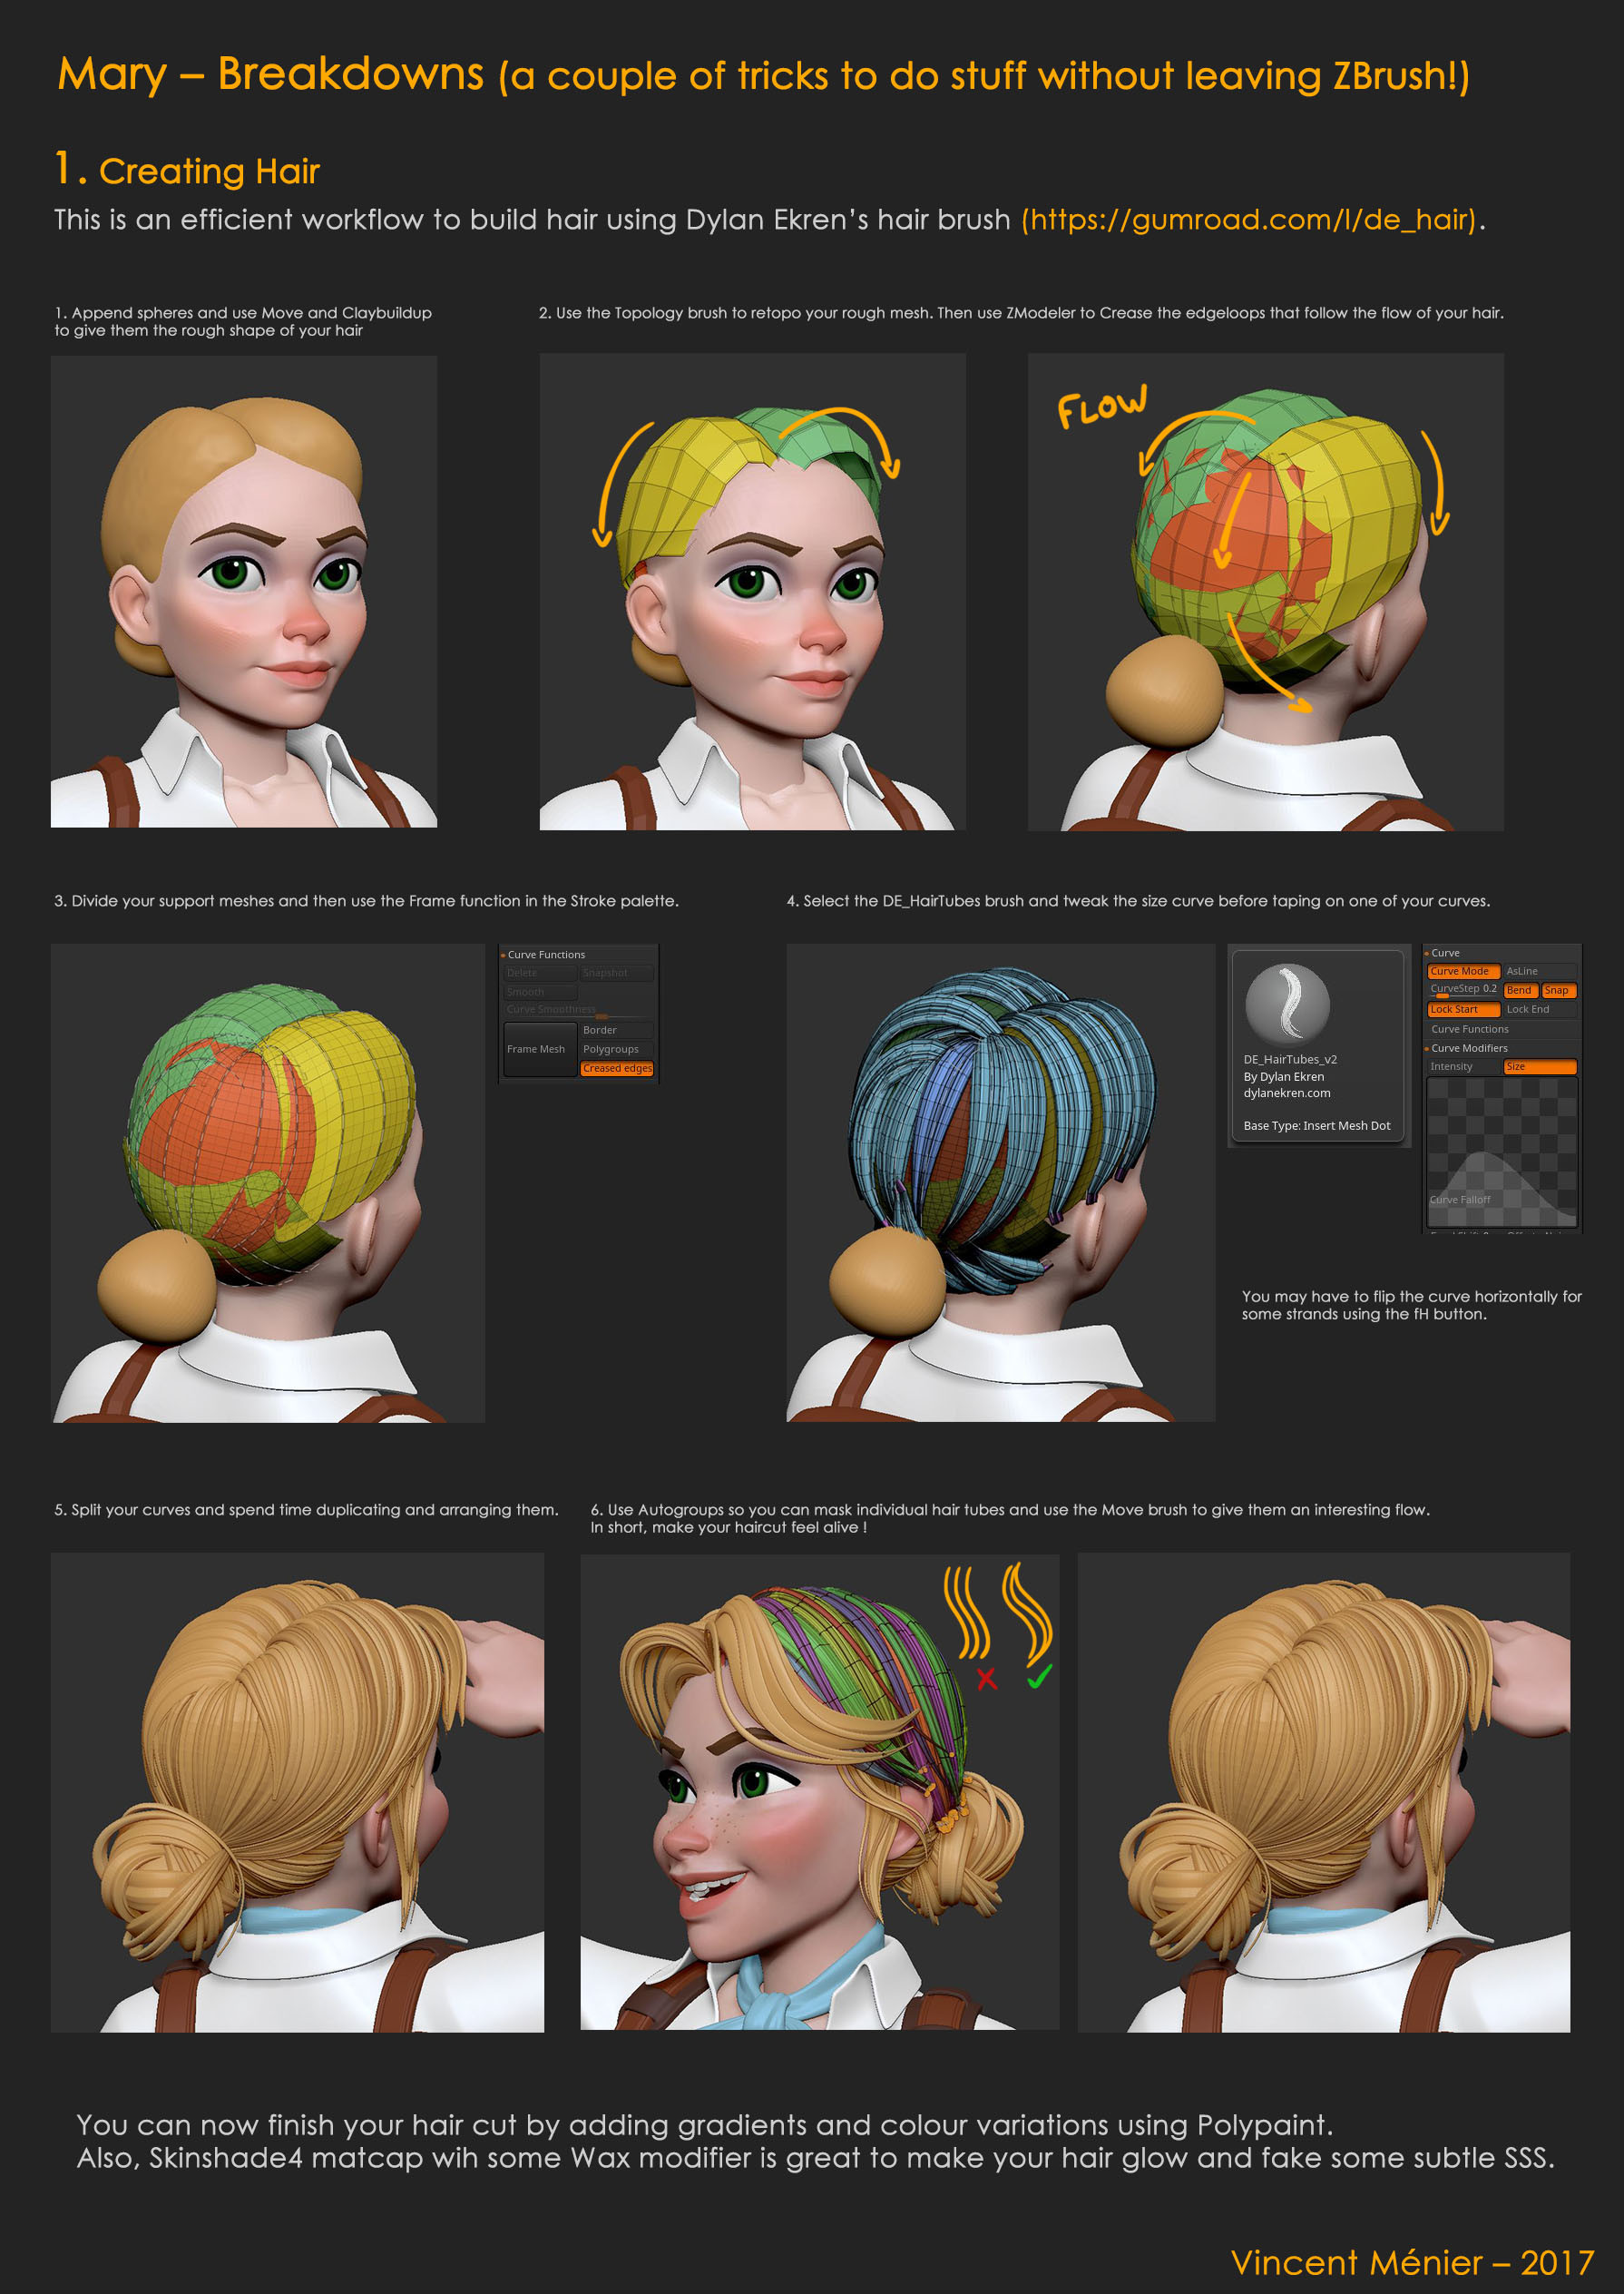 Vincent menier mary breakdown 01 hair s